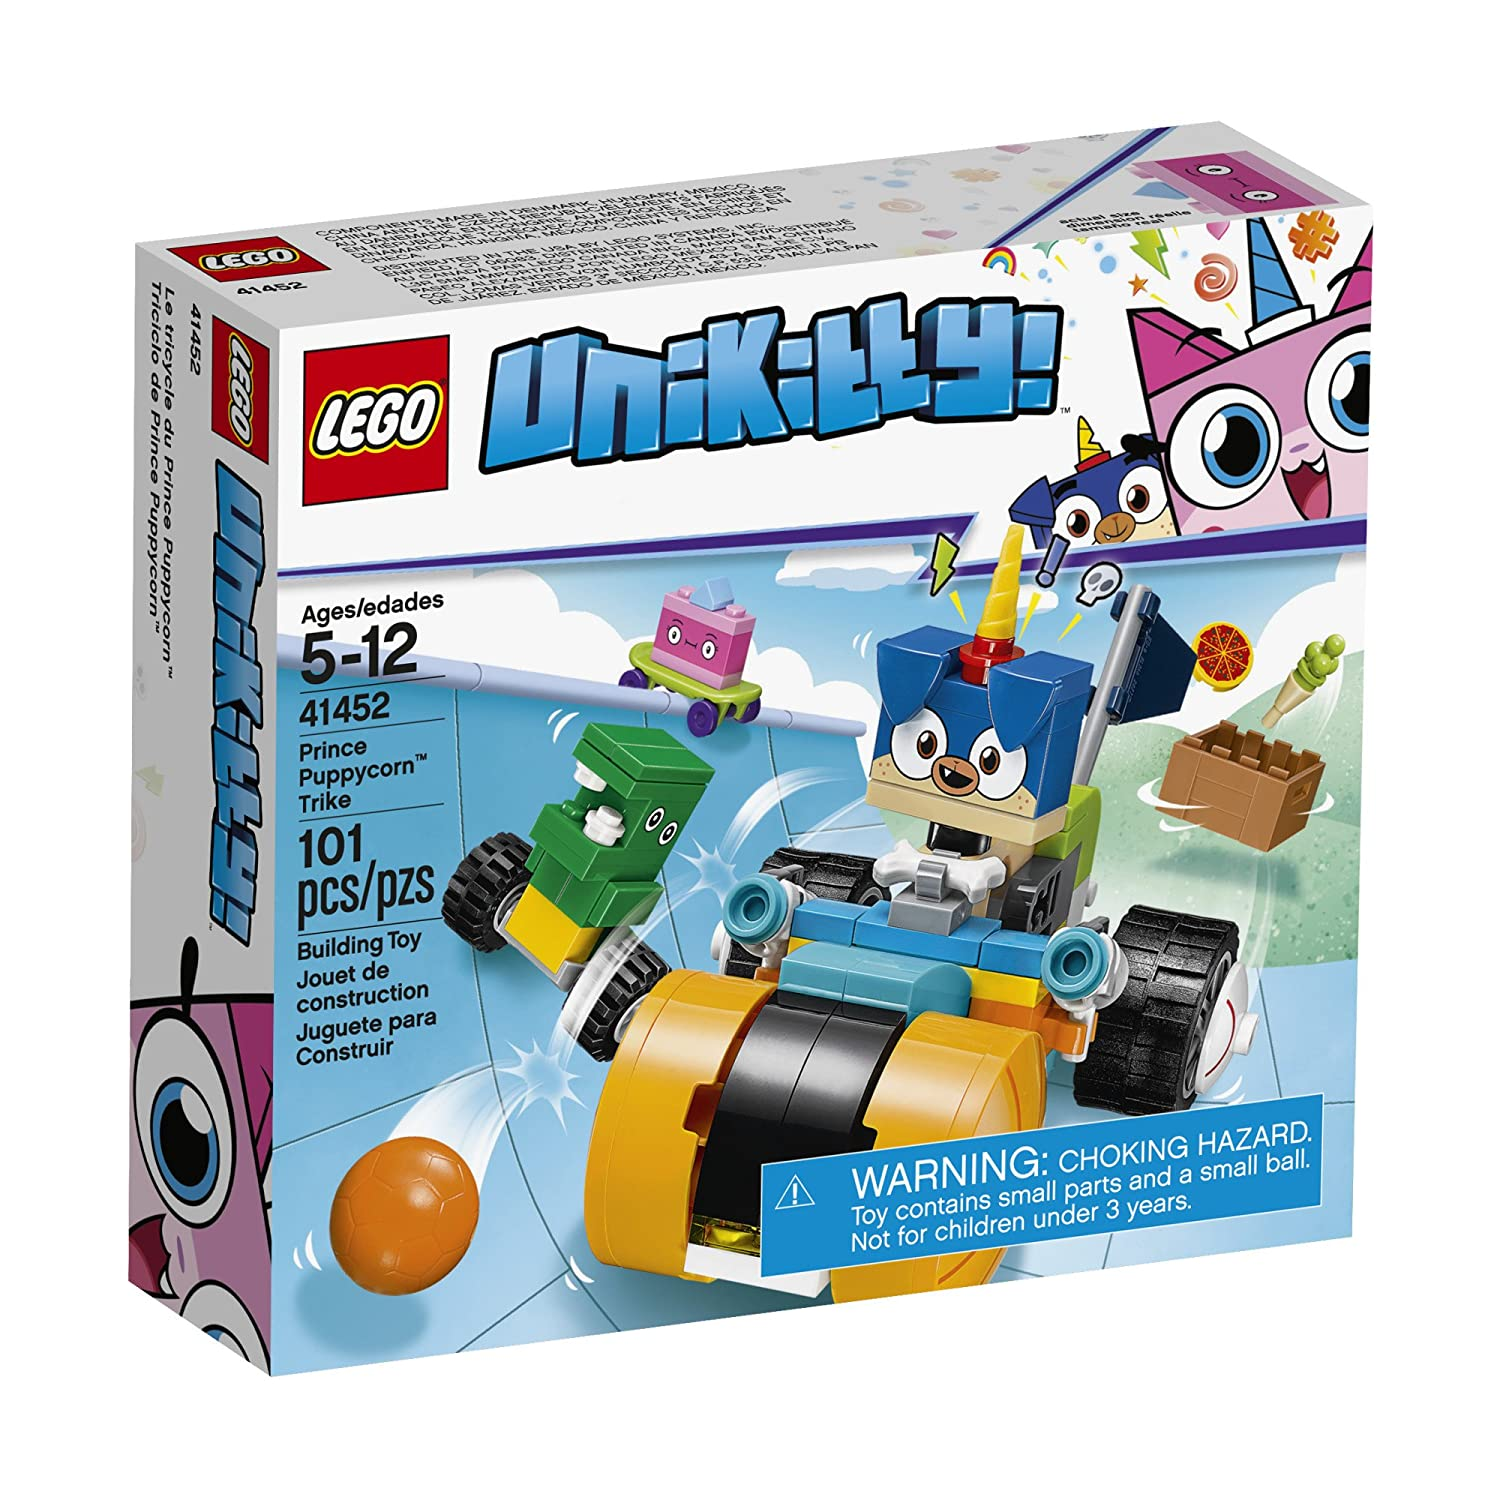 Top 7 Best LEGO Unikitty Sets Reviews in 2020 4